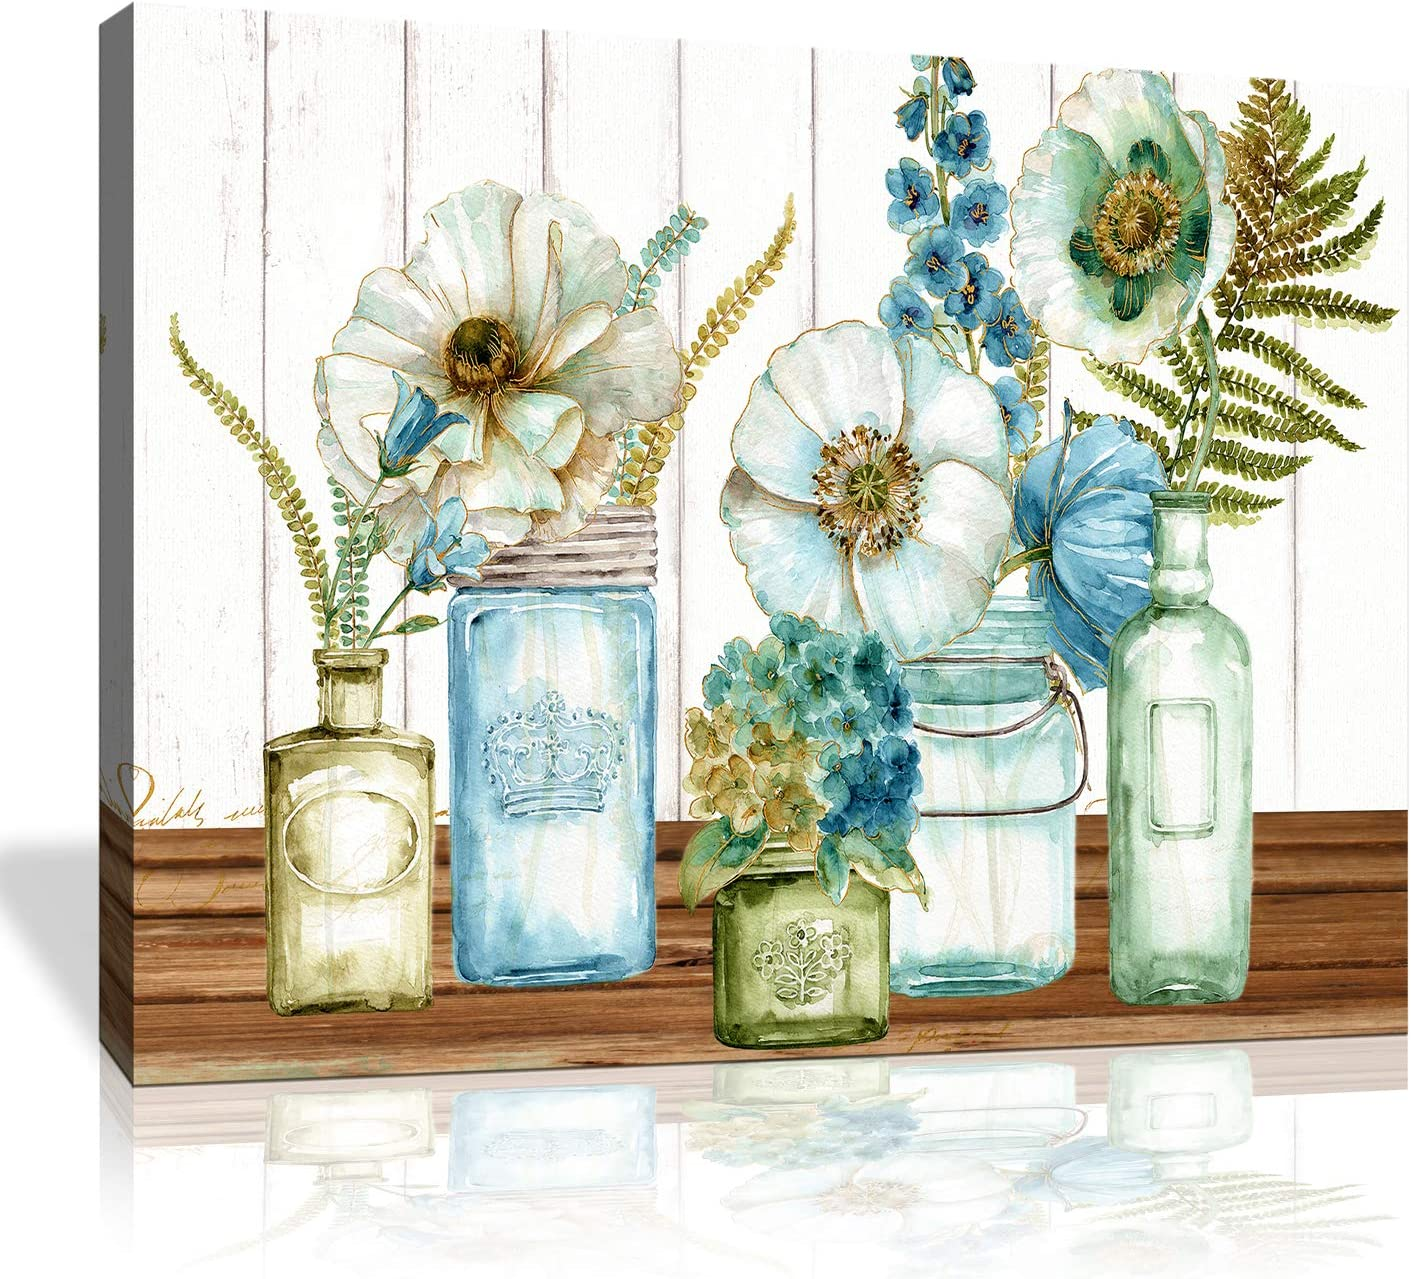 Canvas wall art for Kitchen Decor Painting Rustic Mason Jar Floral Wood Texture Plants Print Pictures Artwork for Home Kitchen Wall Decoration Framed Size:16x24inch